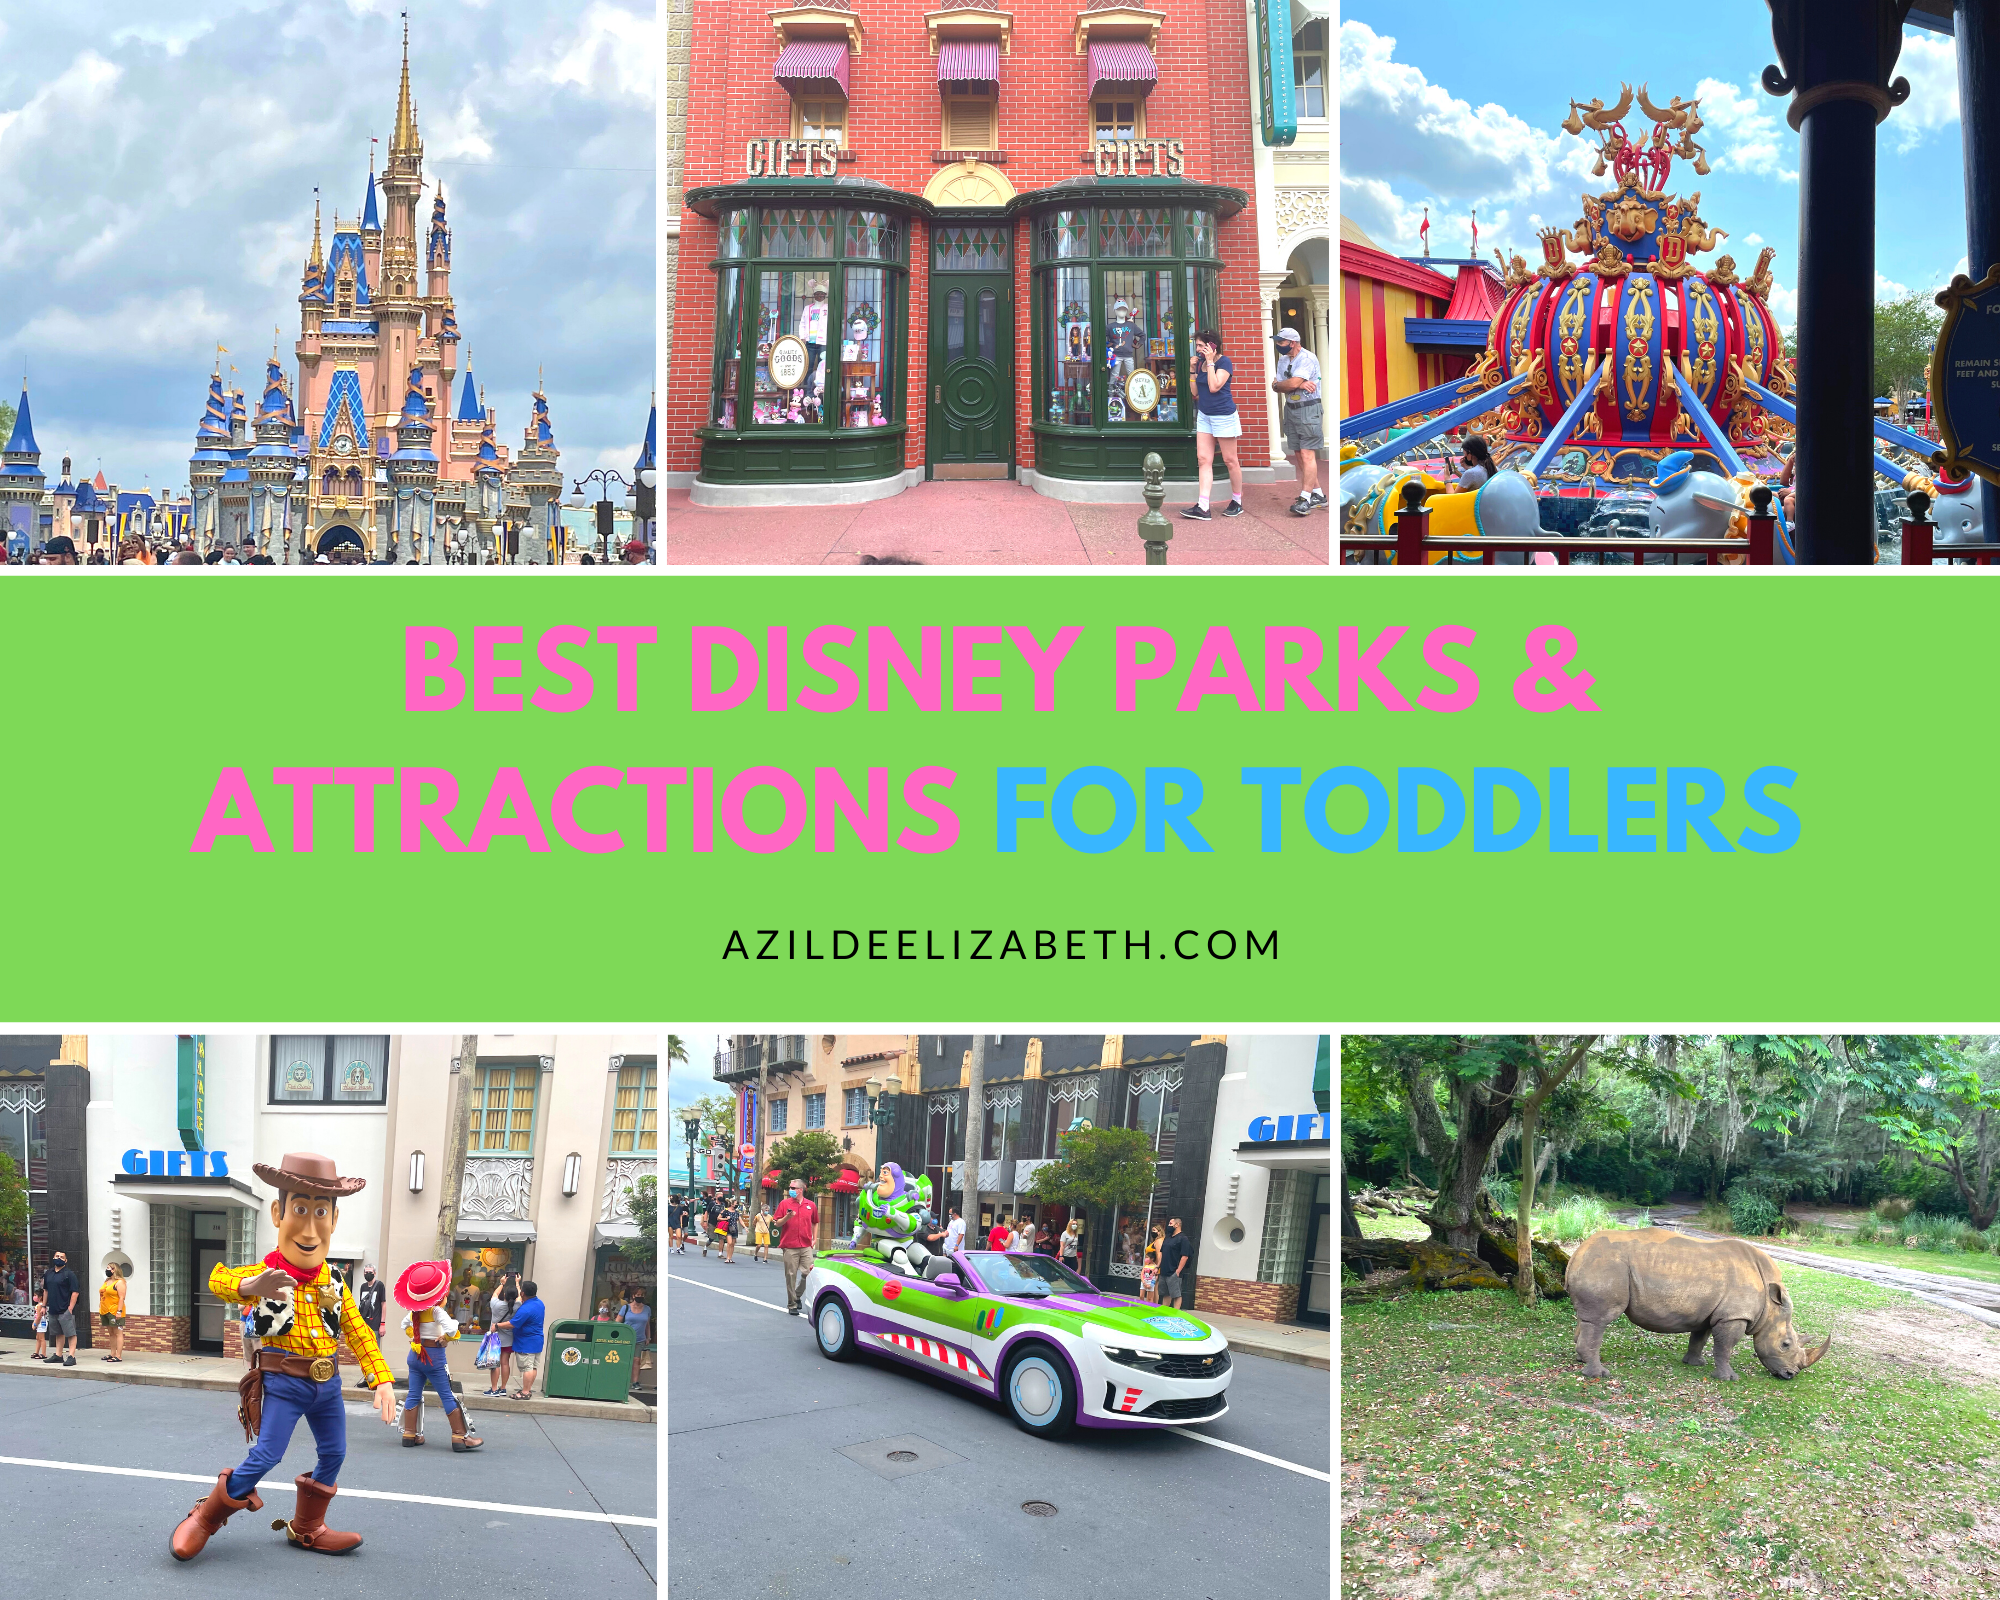 Best Disney Parks and Attractions for Toddlers